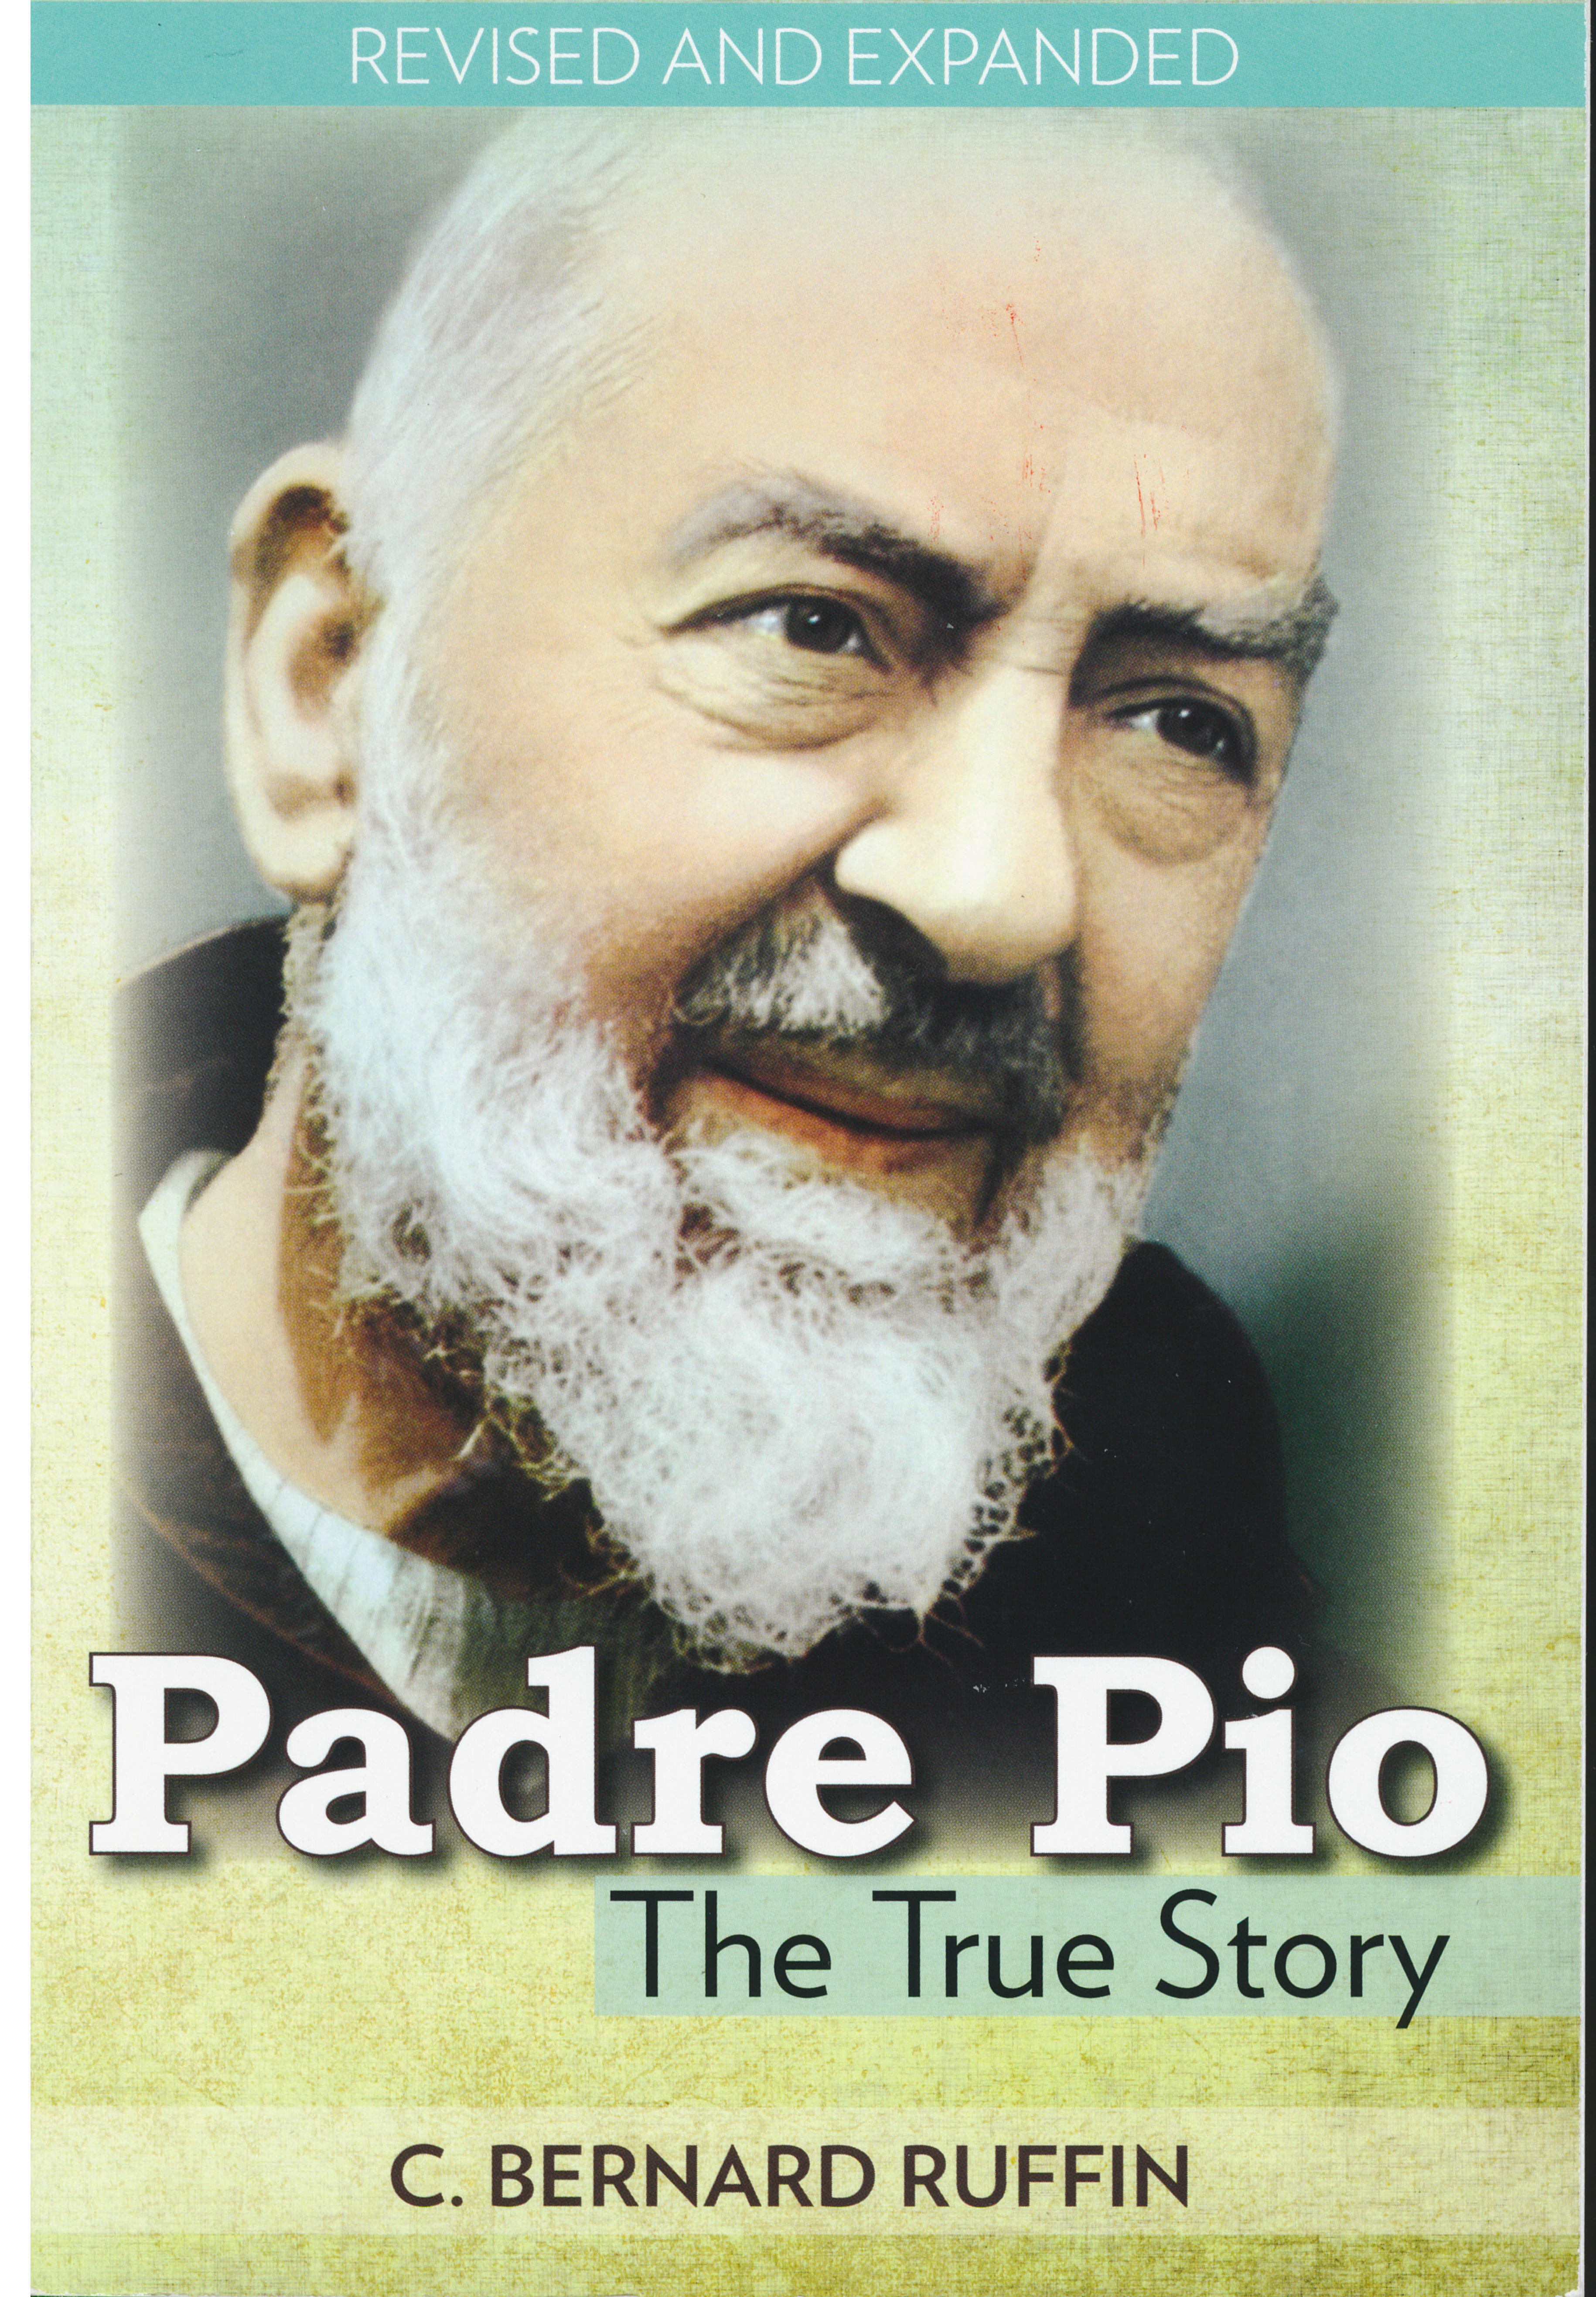 Padre Pio: The True Story by C. Bernard Ruffin 108-9780879736736